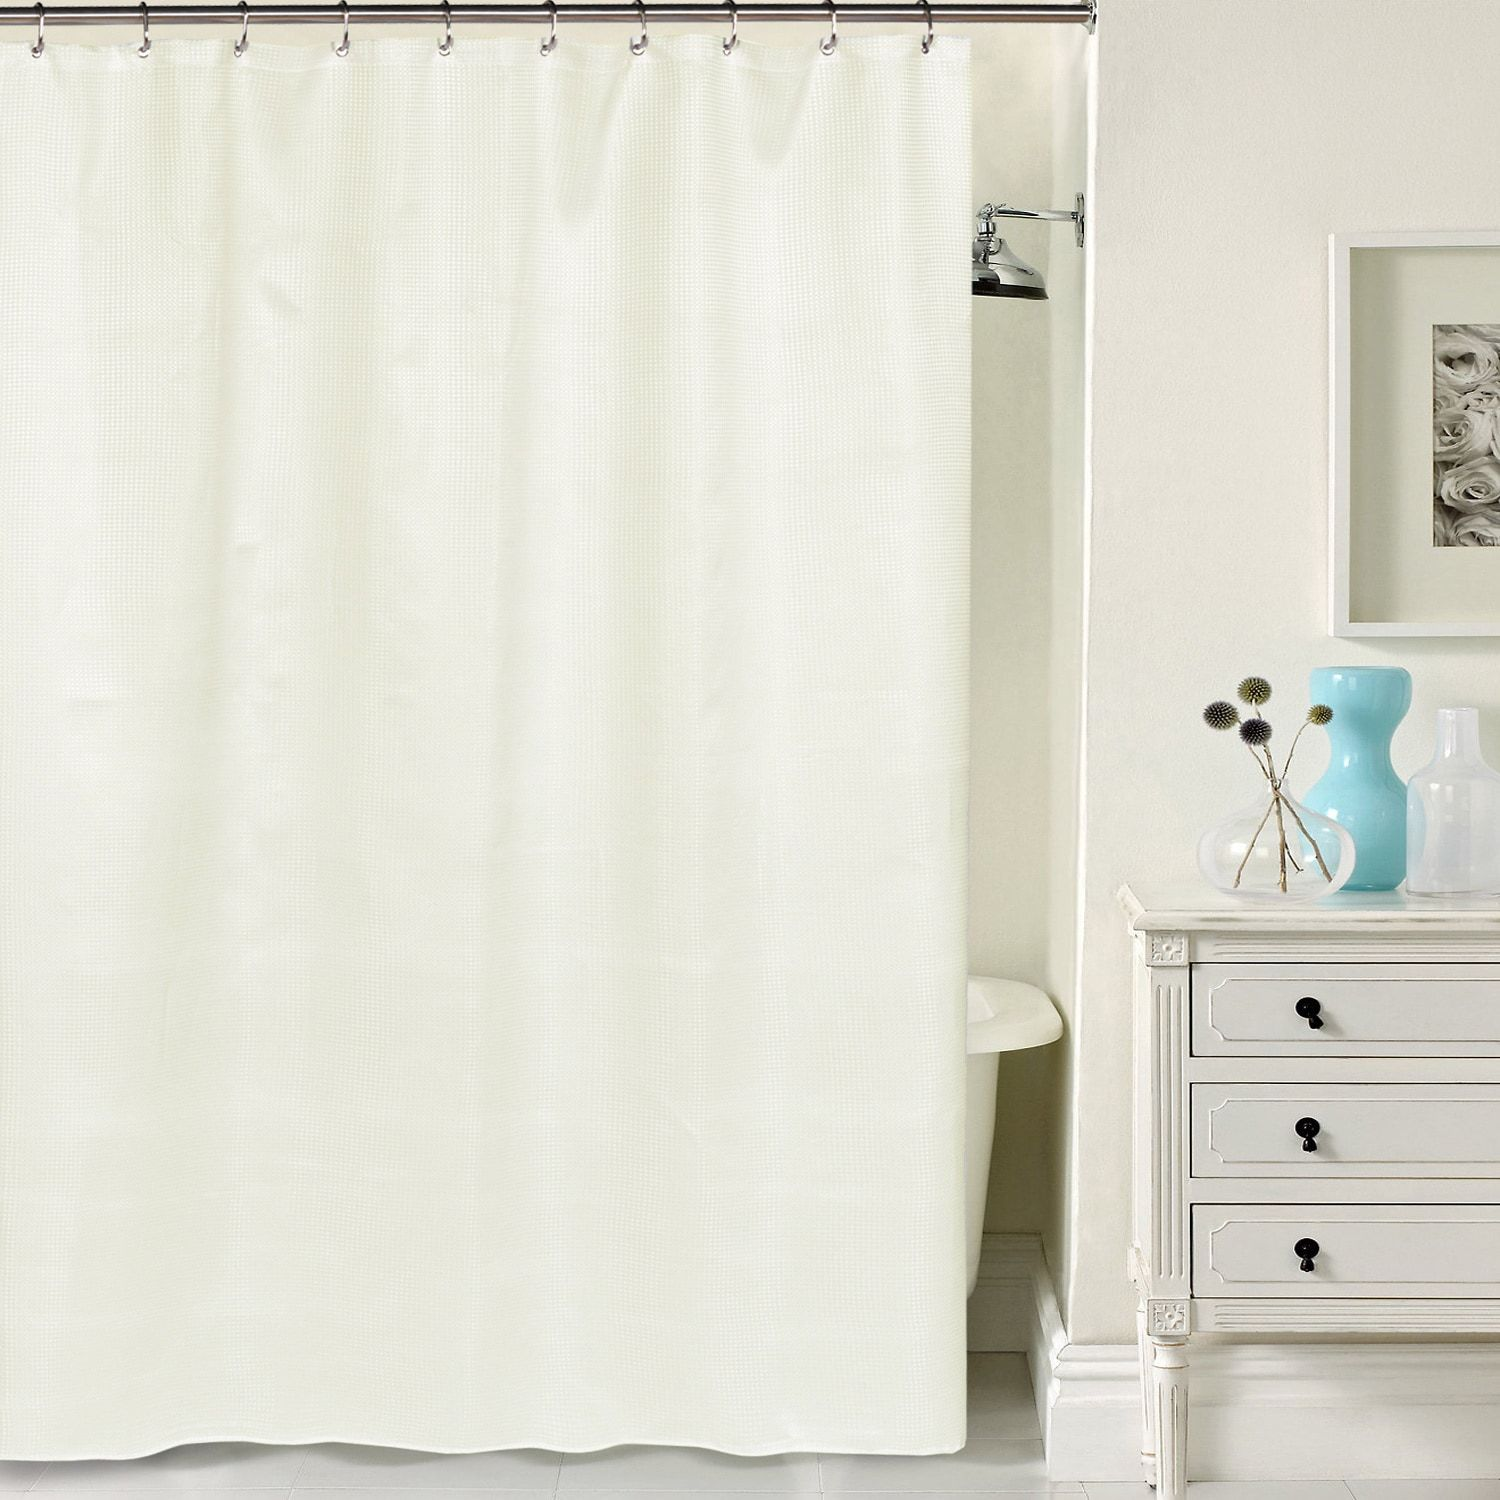 Hotel quality waffle weave fabric shower curtain products